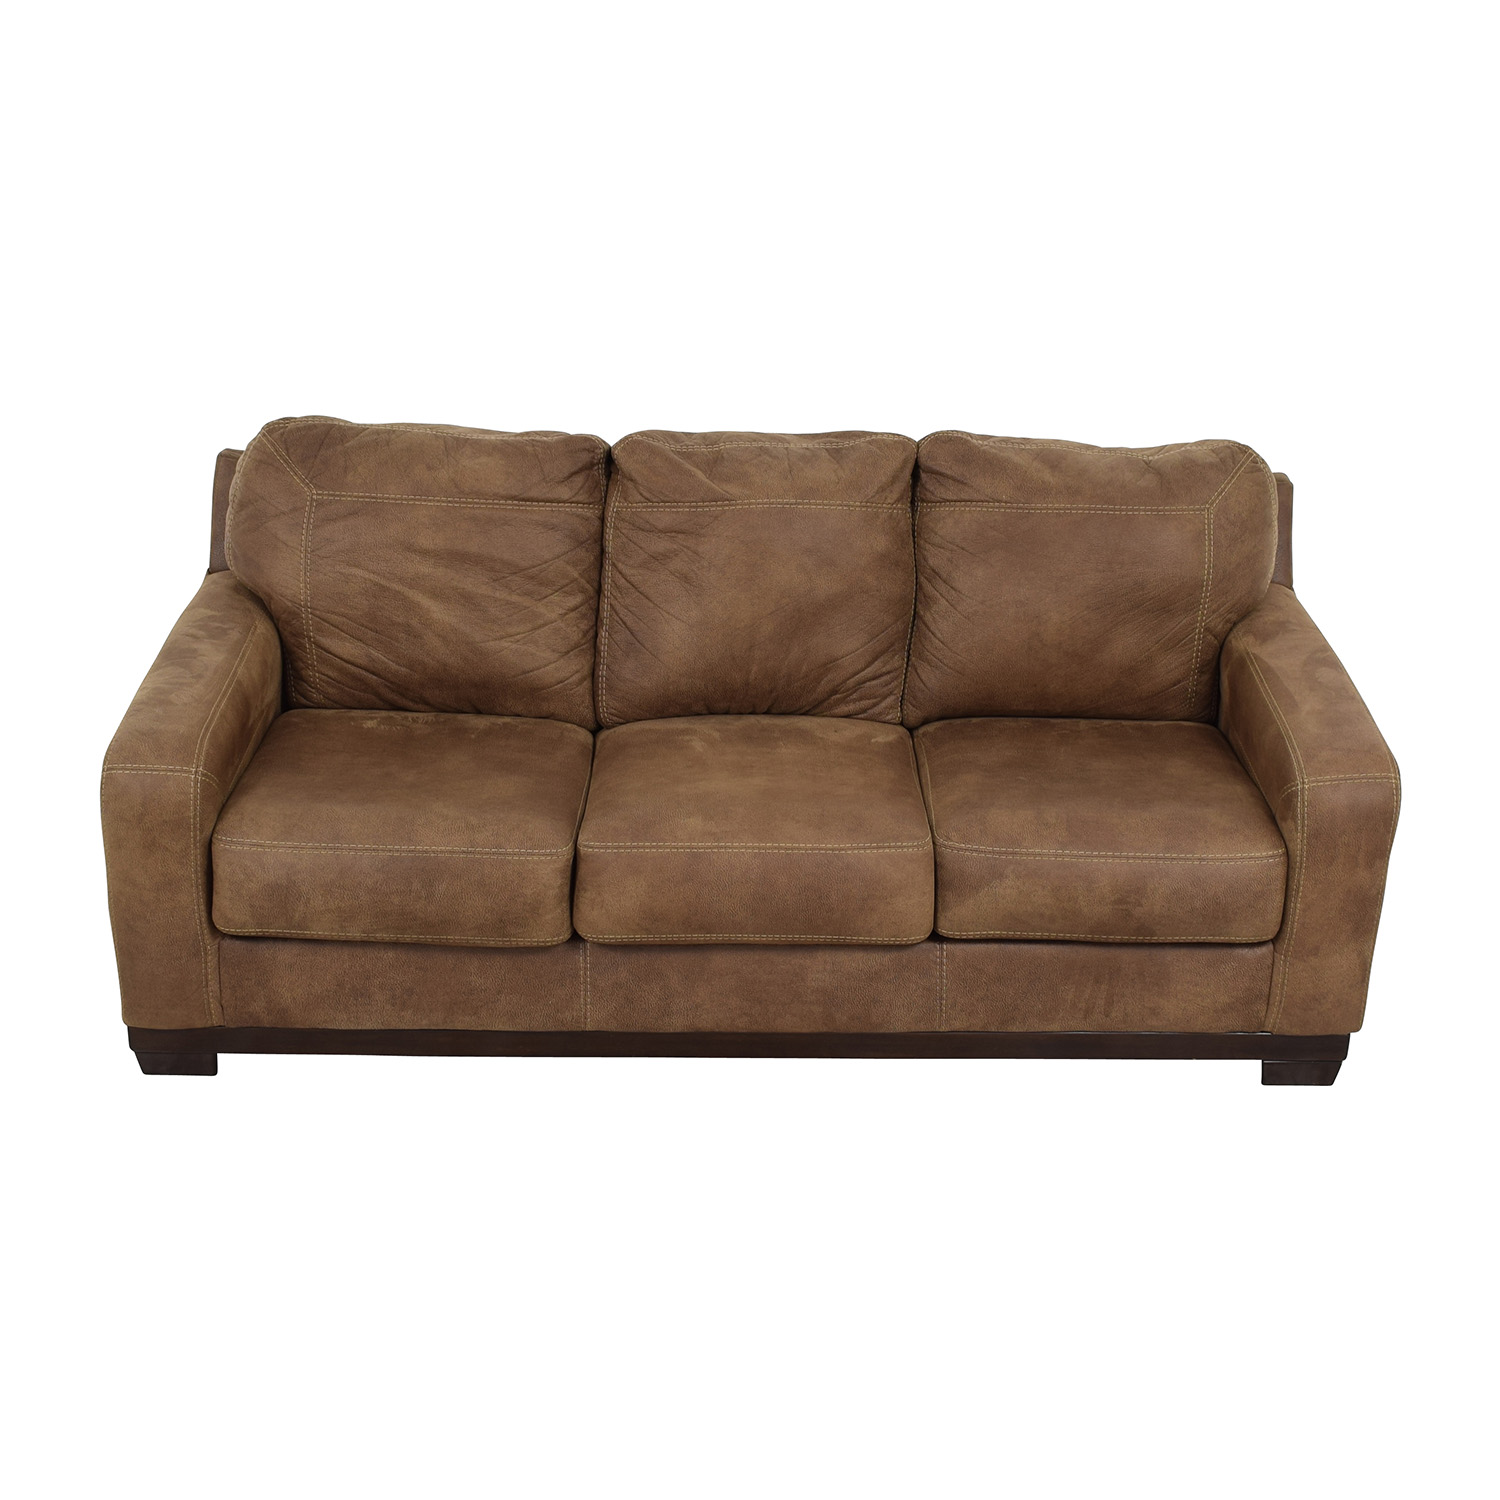 78% OFF Ashley Furniture Ashley Furniture Kylun Brown Three